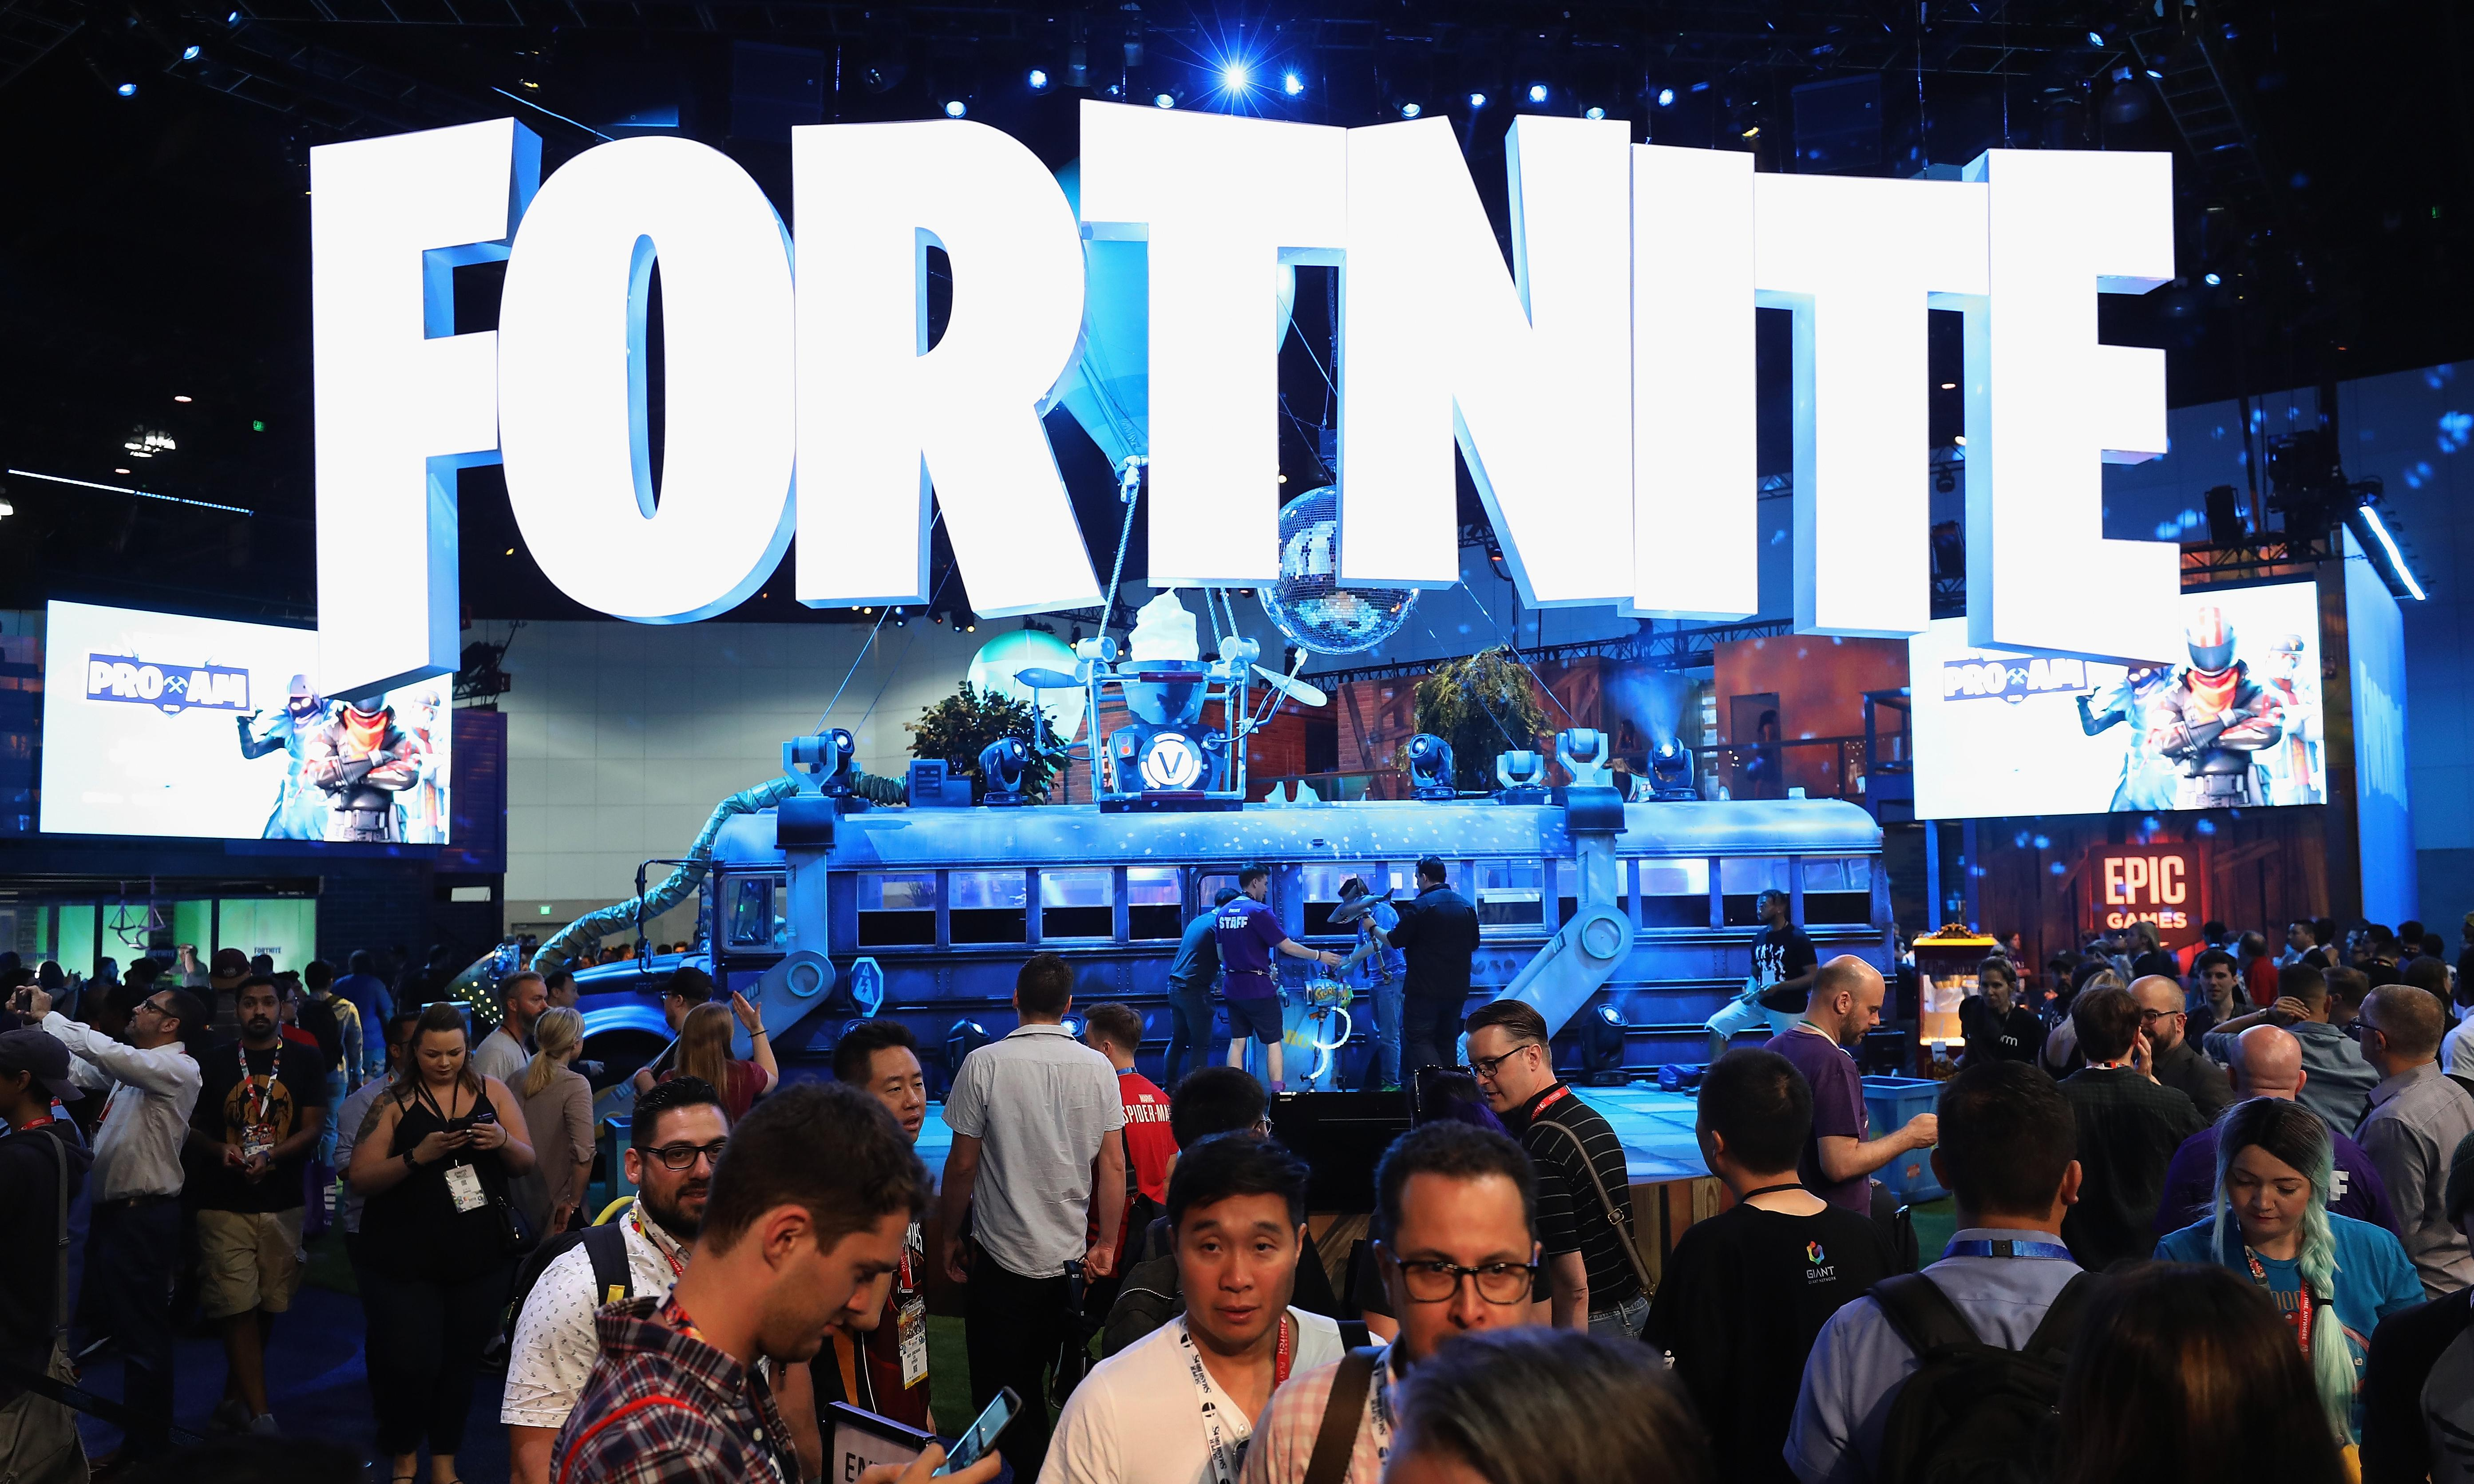 Is Fortnite down? Is it just hype? And is it all Elon Musk's fault?